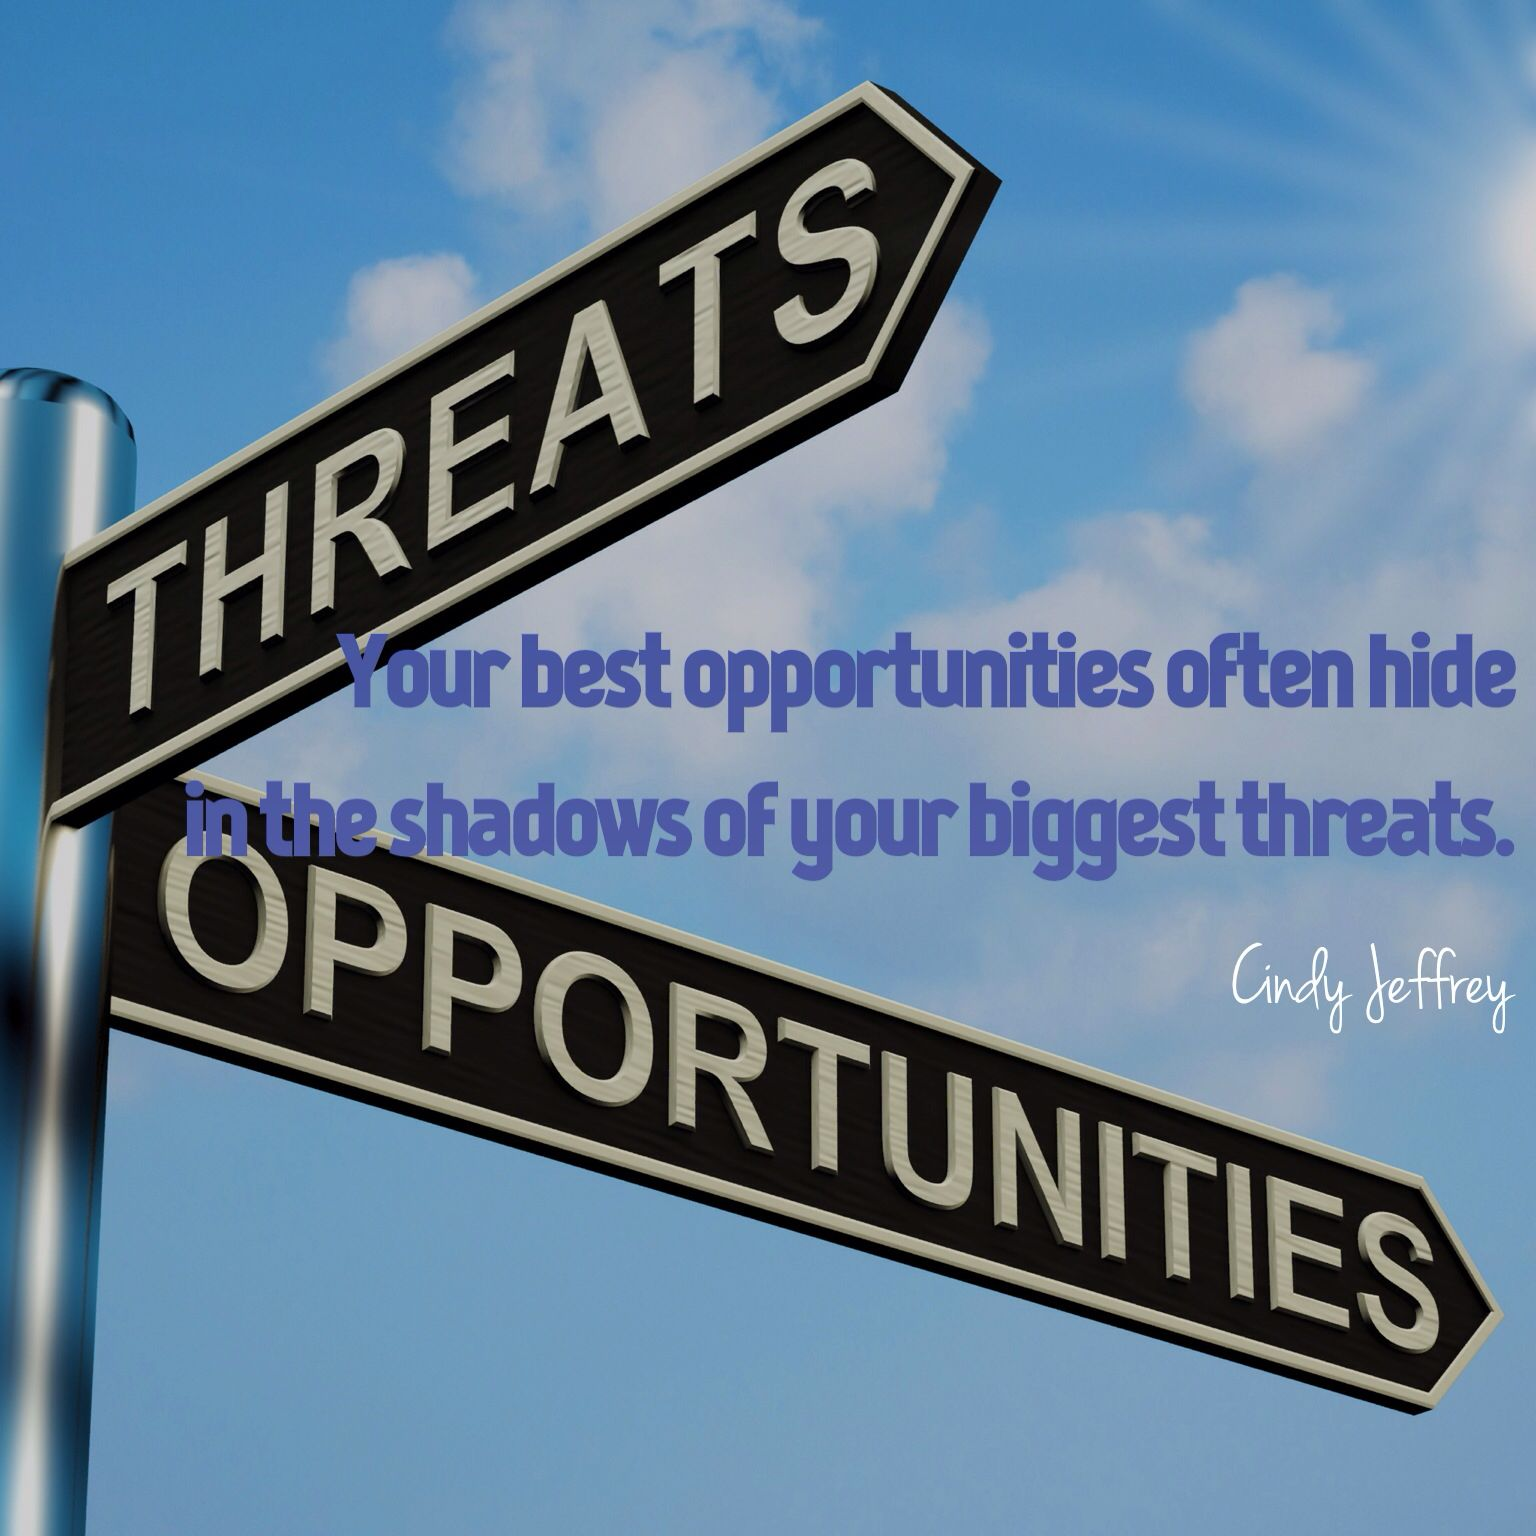 Manage Your Opportunities Be: Threat Or Opportunity? It's Your Choice